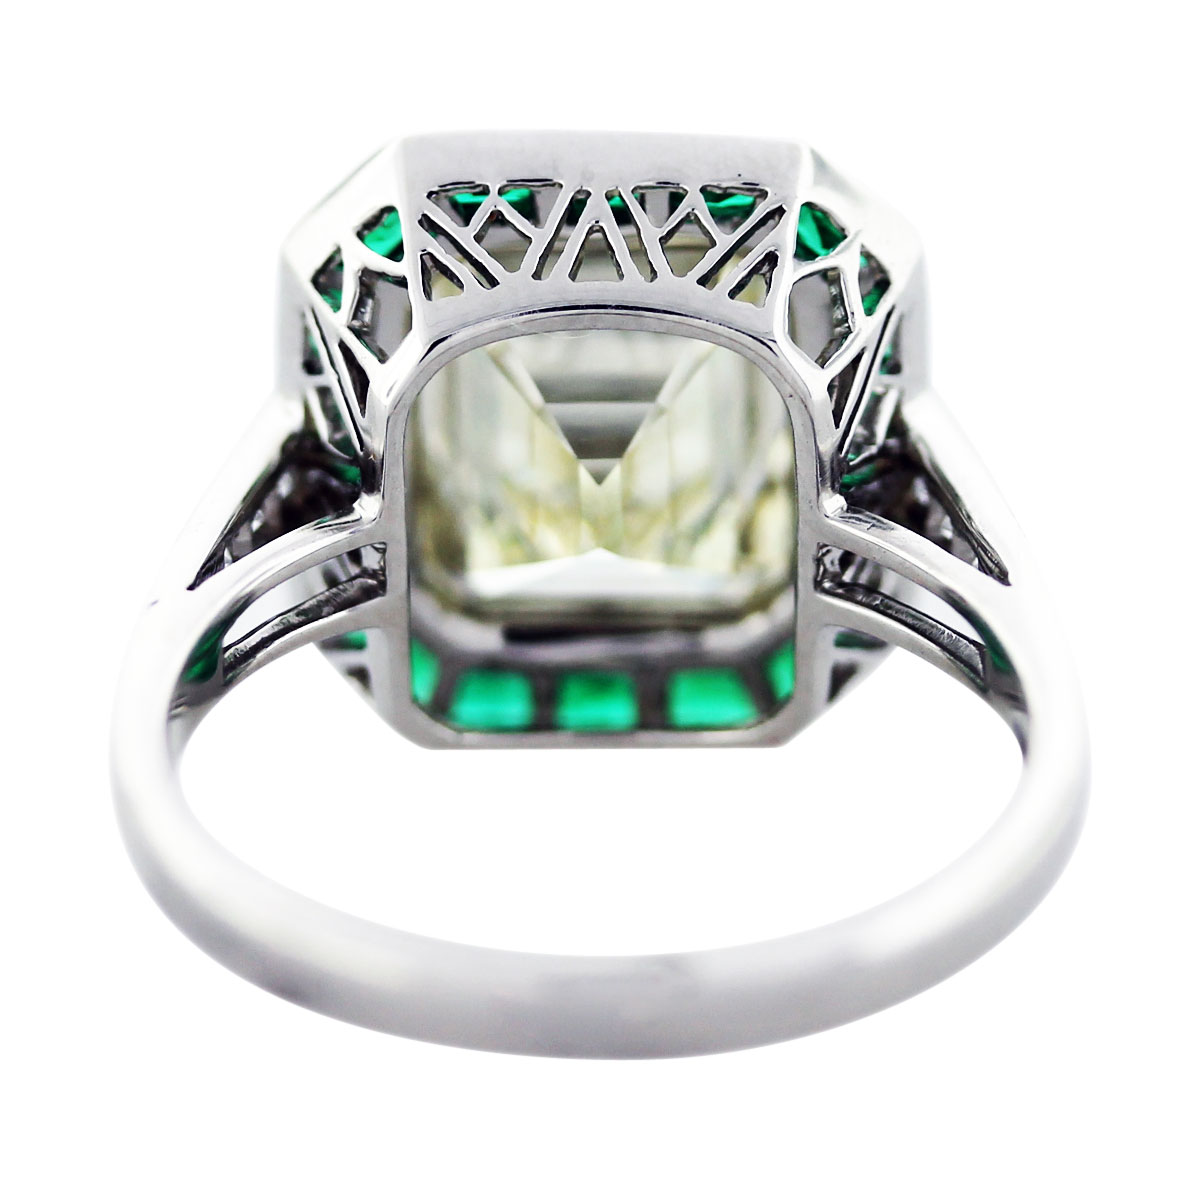 5 ct emerald cut diamond emerald platinum engagement ring boca raton